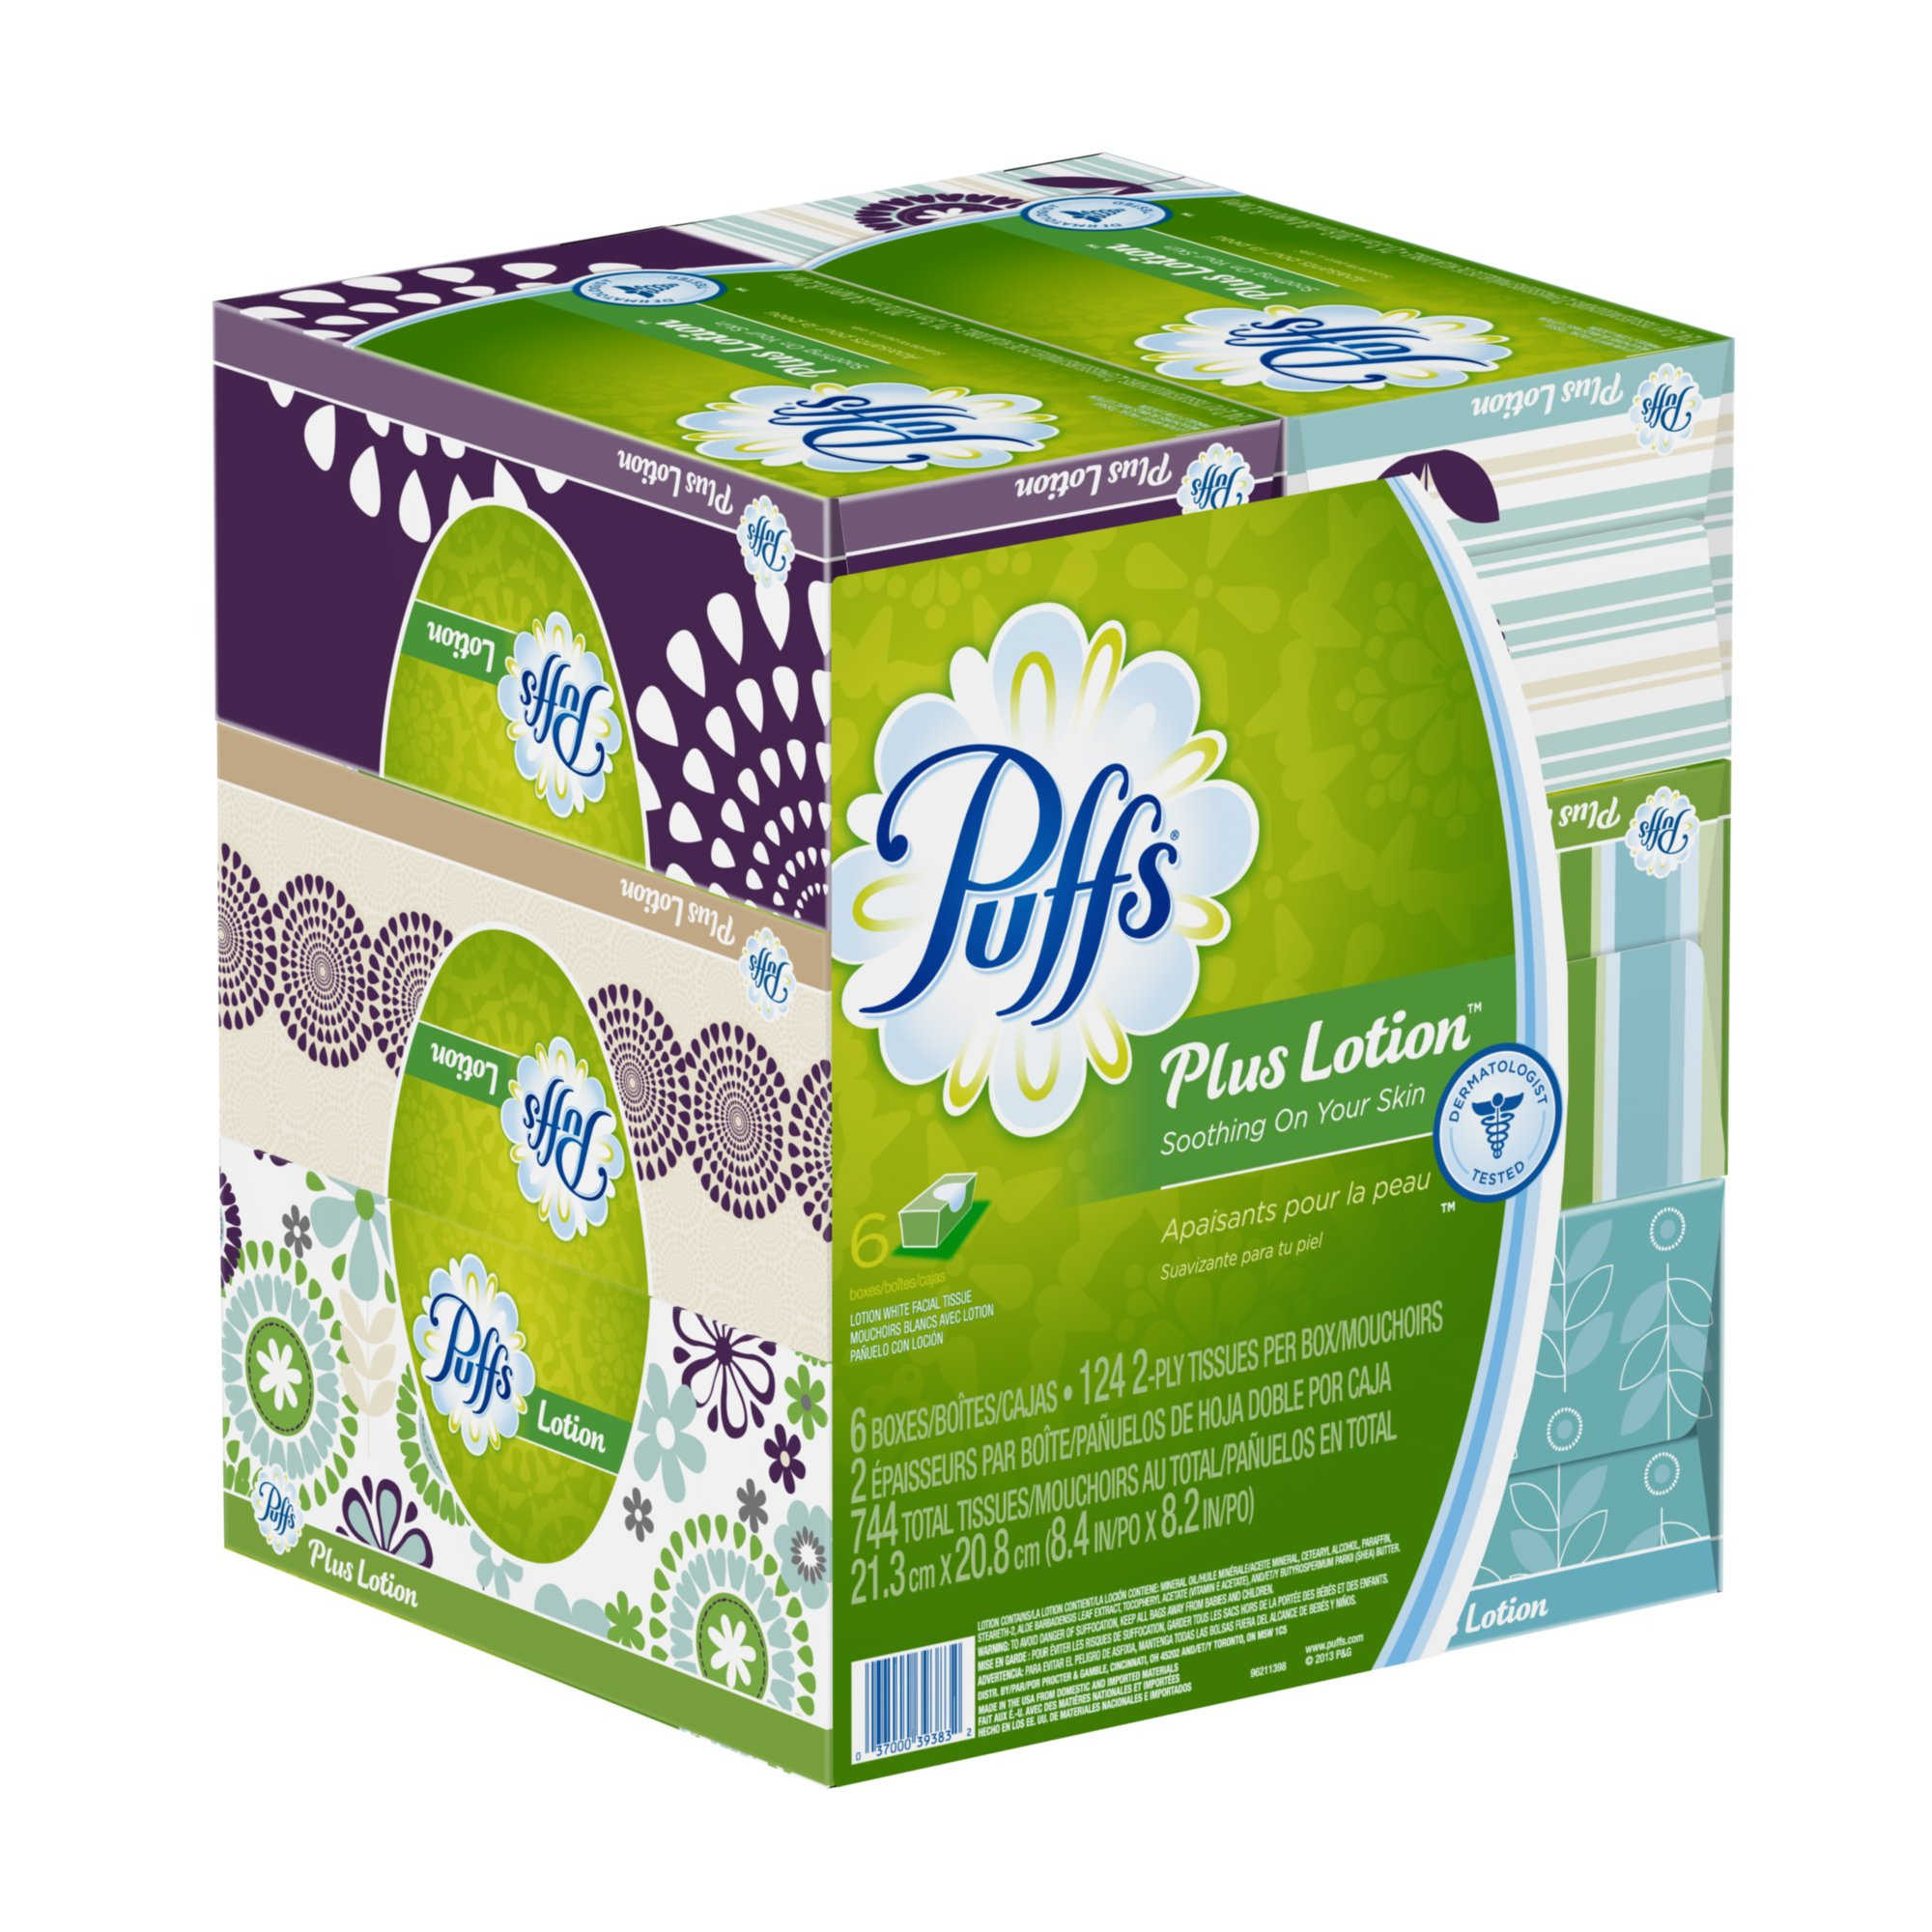 Puffs Plus Lotion Facial Tissues; 6 Family Boxes; 124 Tissues per Box product image